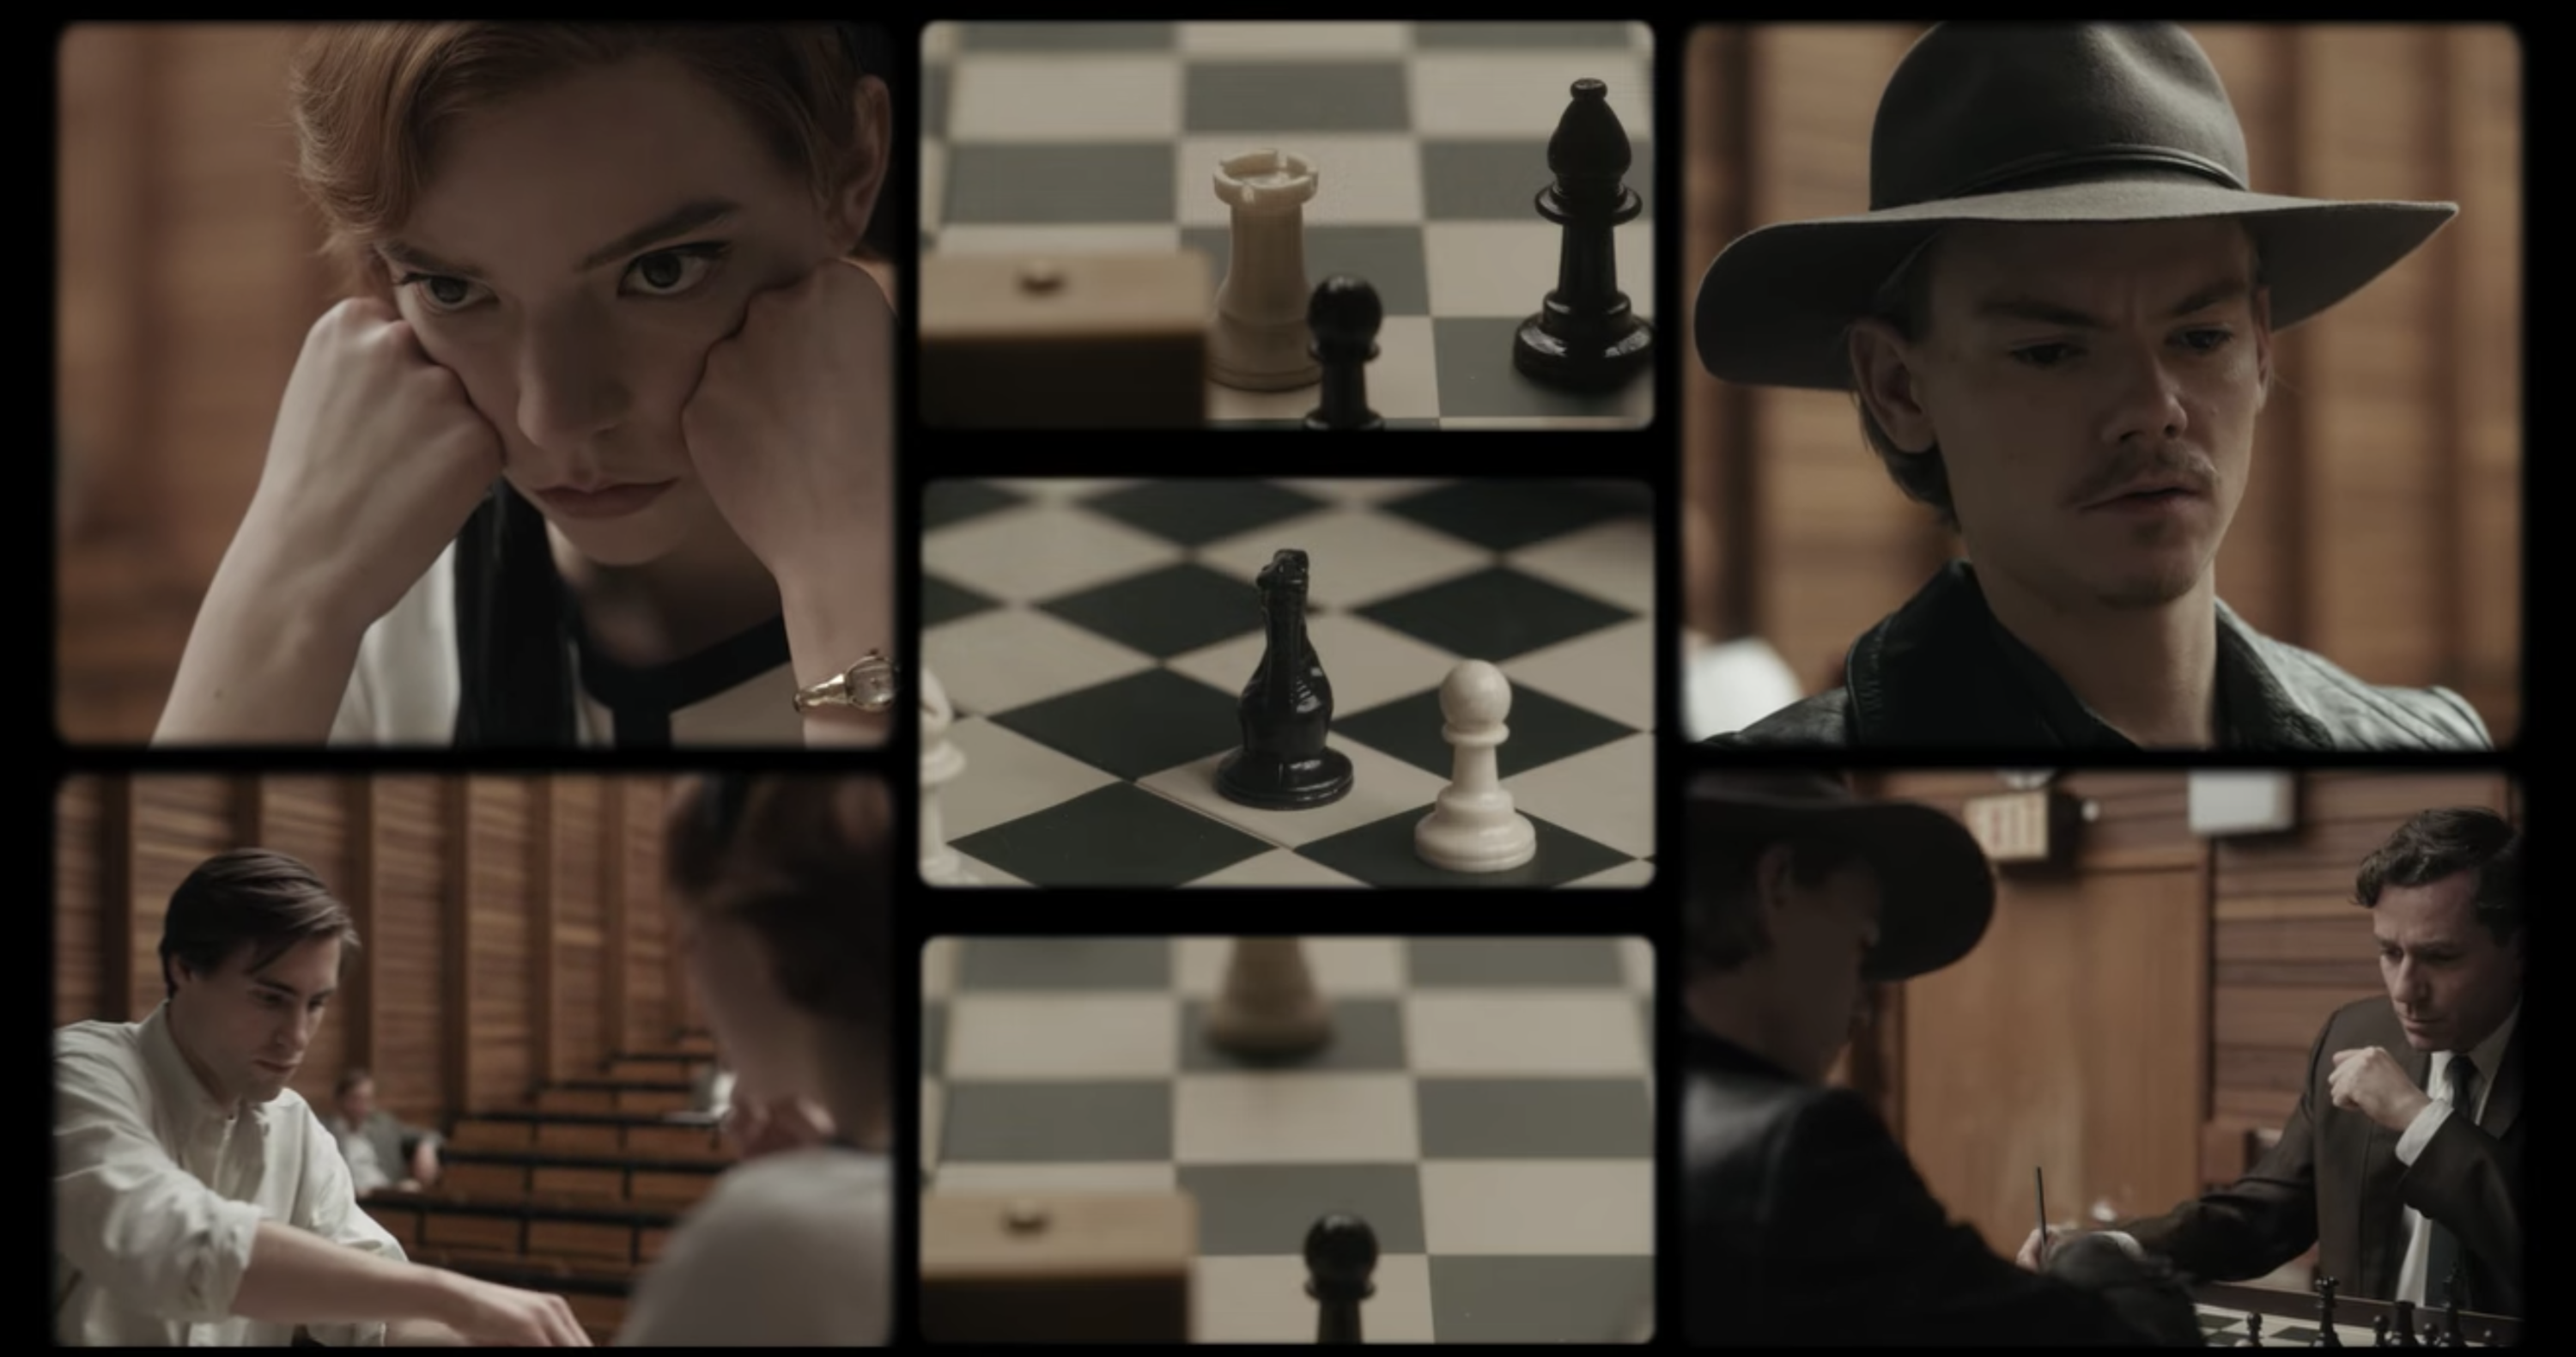 Various shots of chess matches and the actors playing them